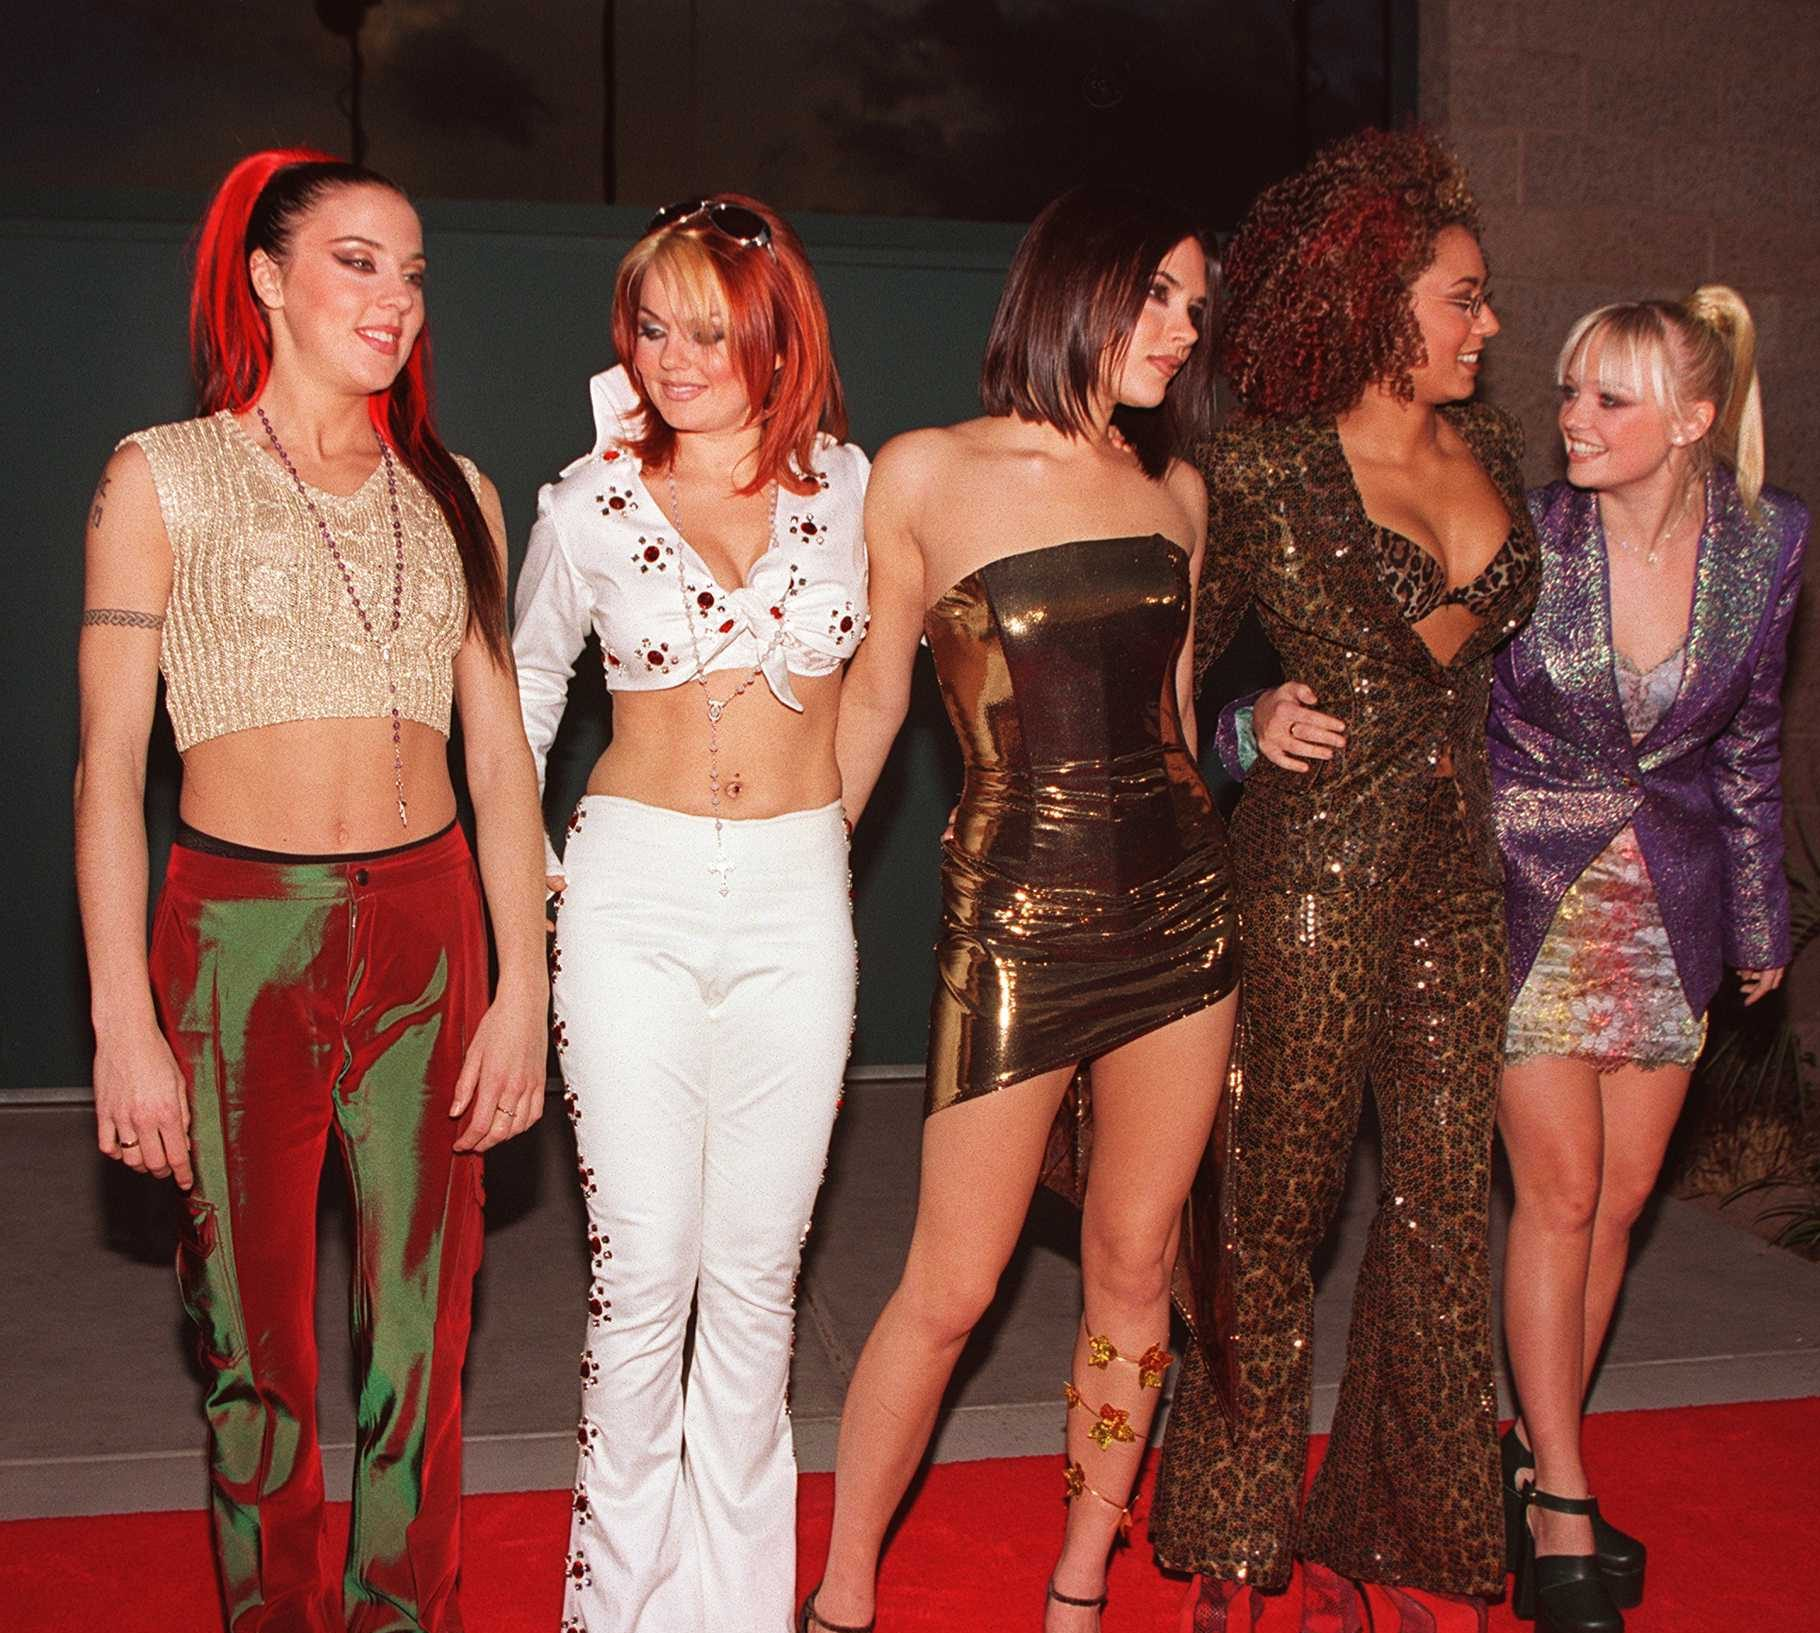 gettyimages 850268 e1624023991415 Zig-A-Zig-Ah! It's 25 Fascinating Facts About The Spice Girls!